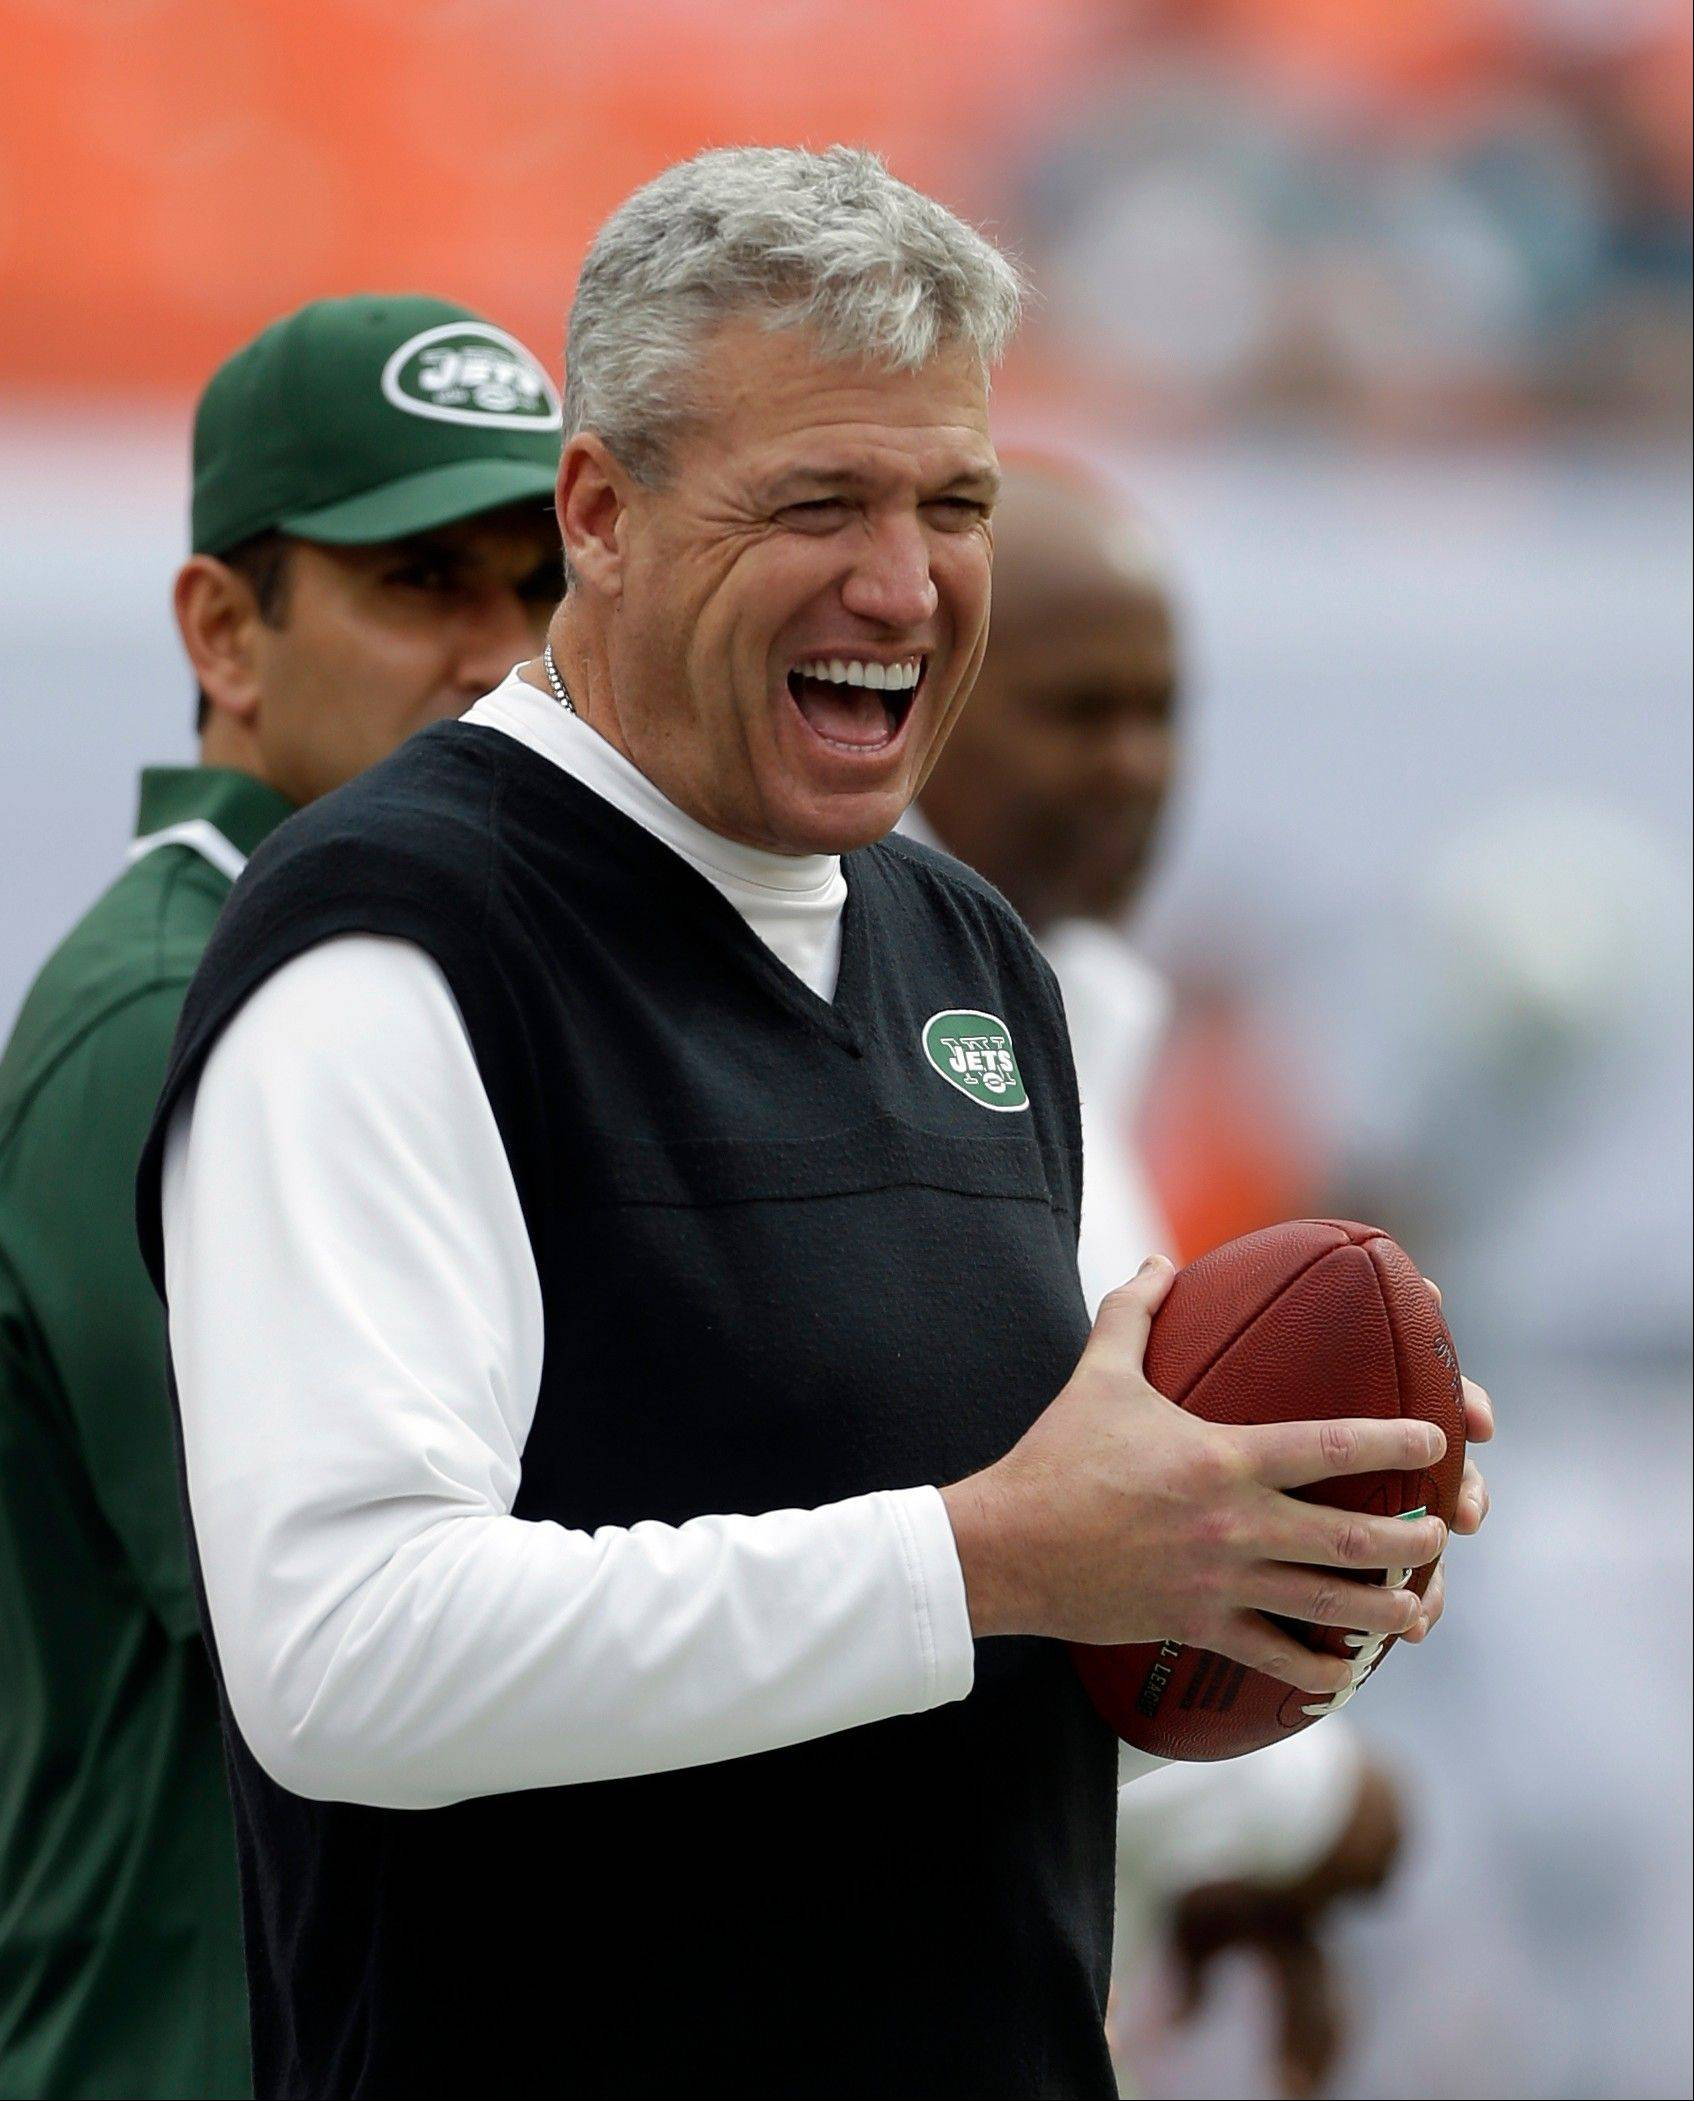 New York Jets head coach Rex Ryan has a laugh on the sideline before Sunday�s game against the Miami Dolphins.